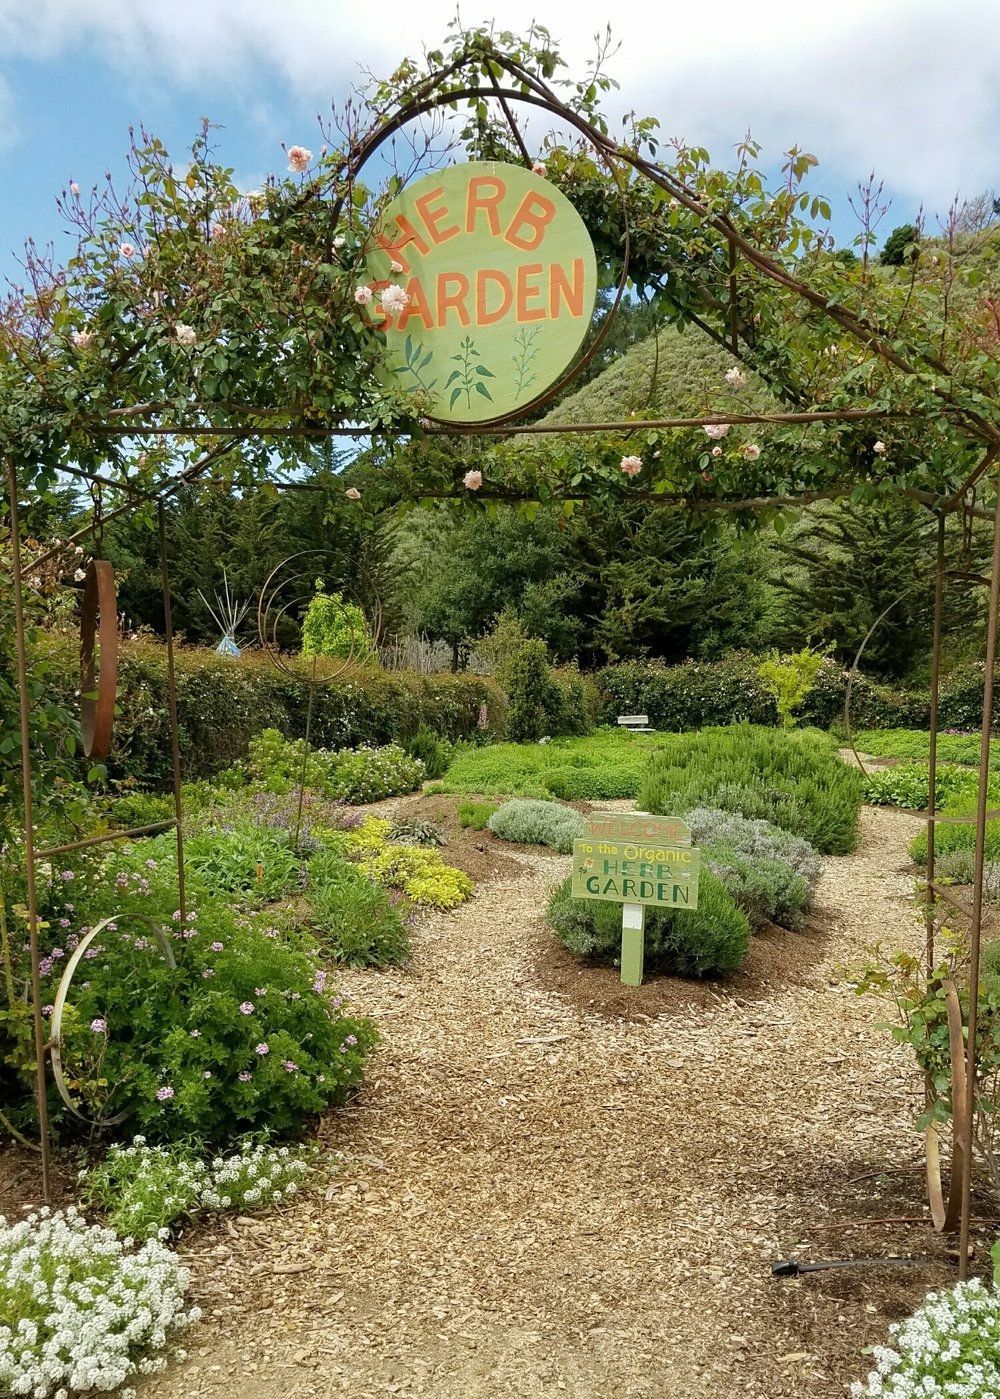 The Earthbound Farm's herb garden in Carmel Valley, CA